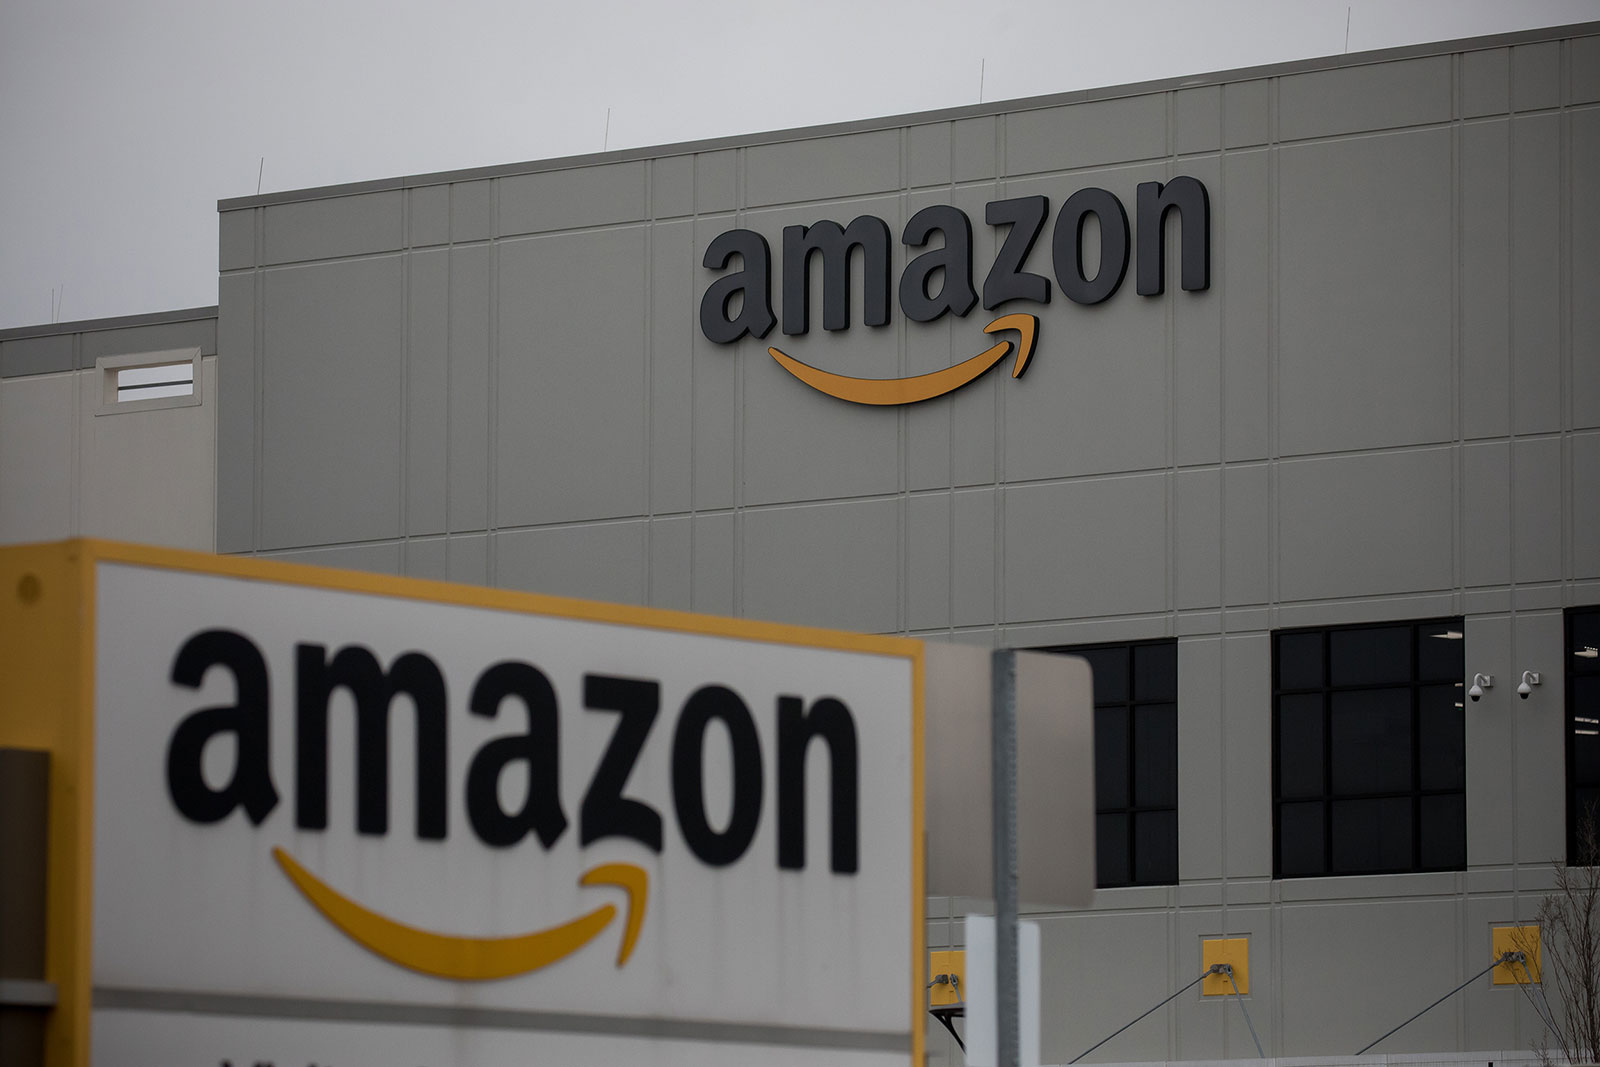 The exterior of Amazon's Staten Island warehouse on Tuesday, March 31.